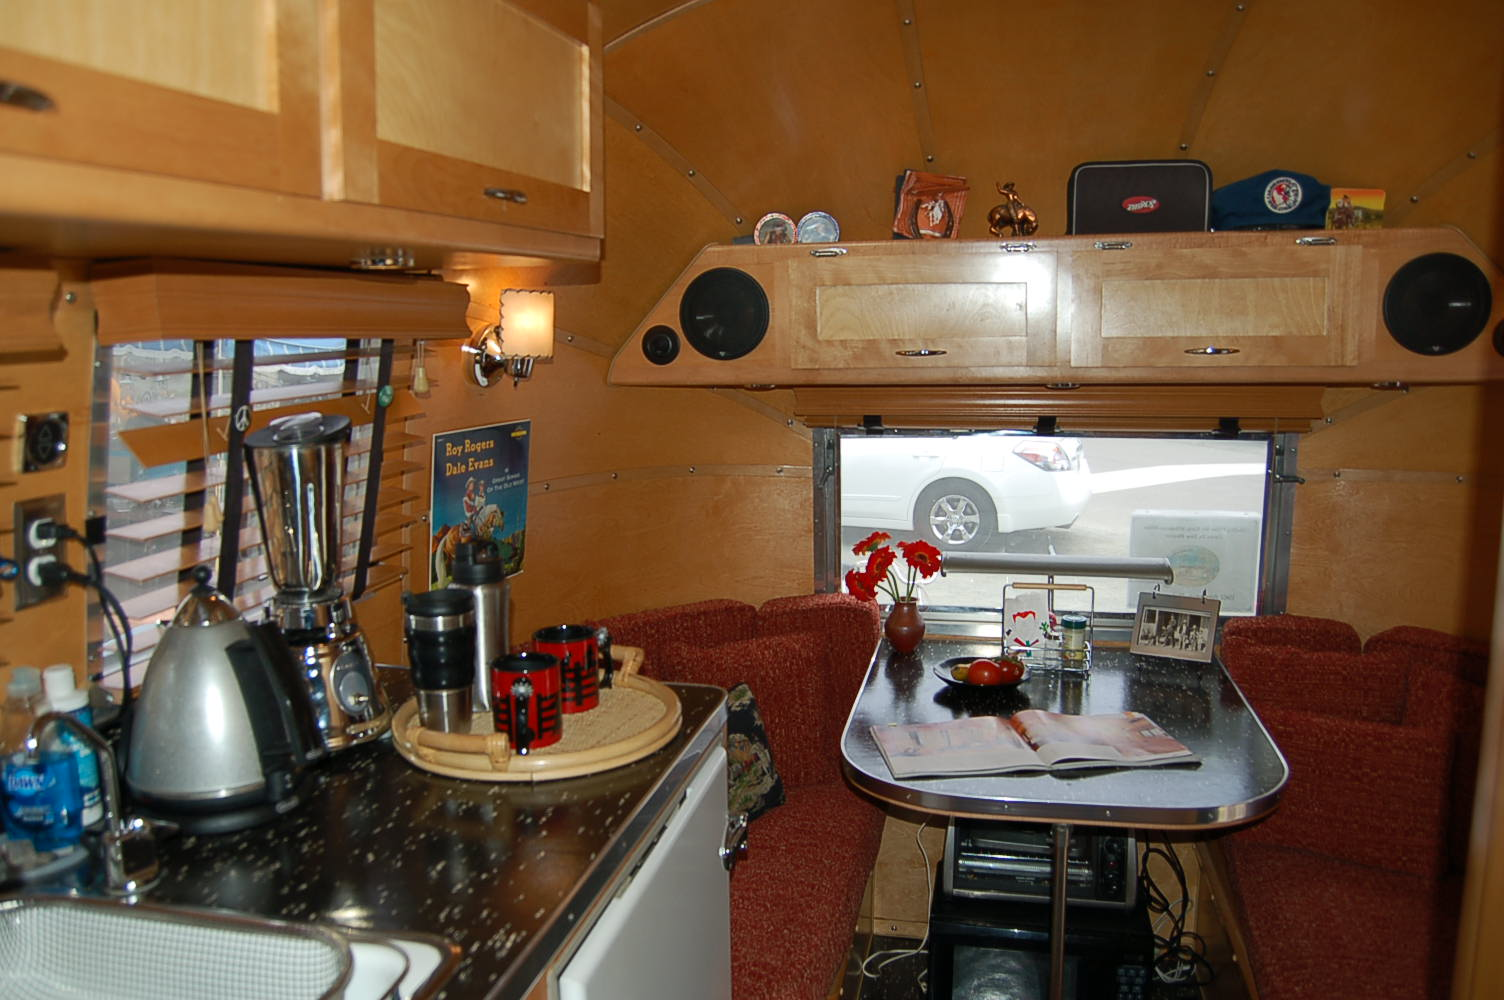 Amazing 1961 Airstream Globetrotter With Very Sharp Countertop And Cabinets In  Galley